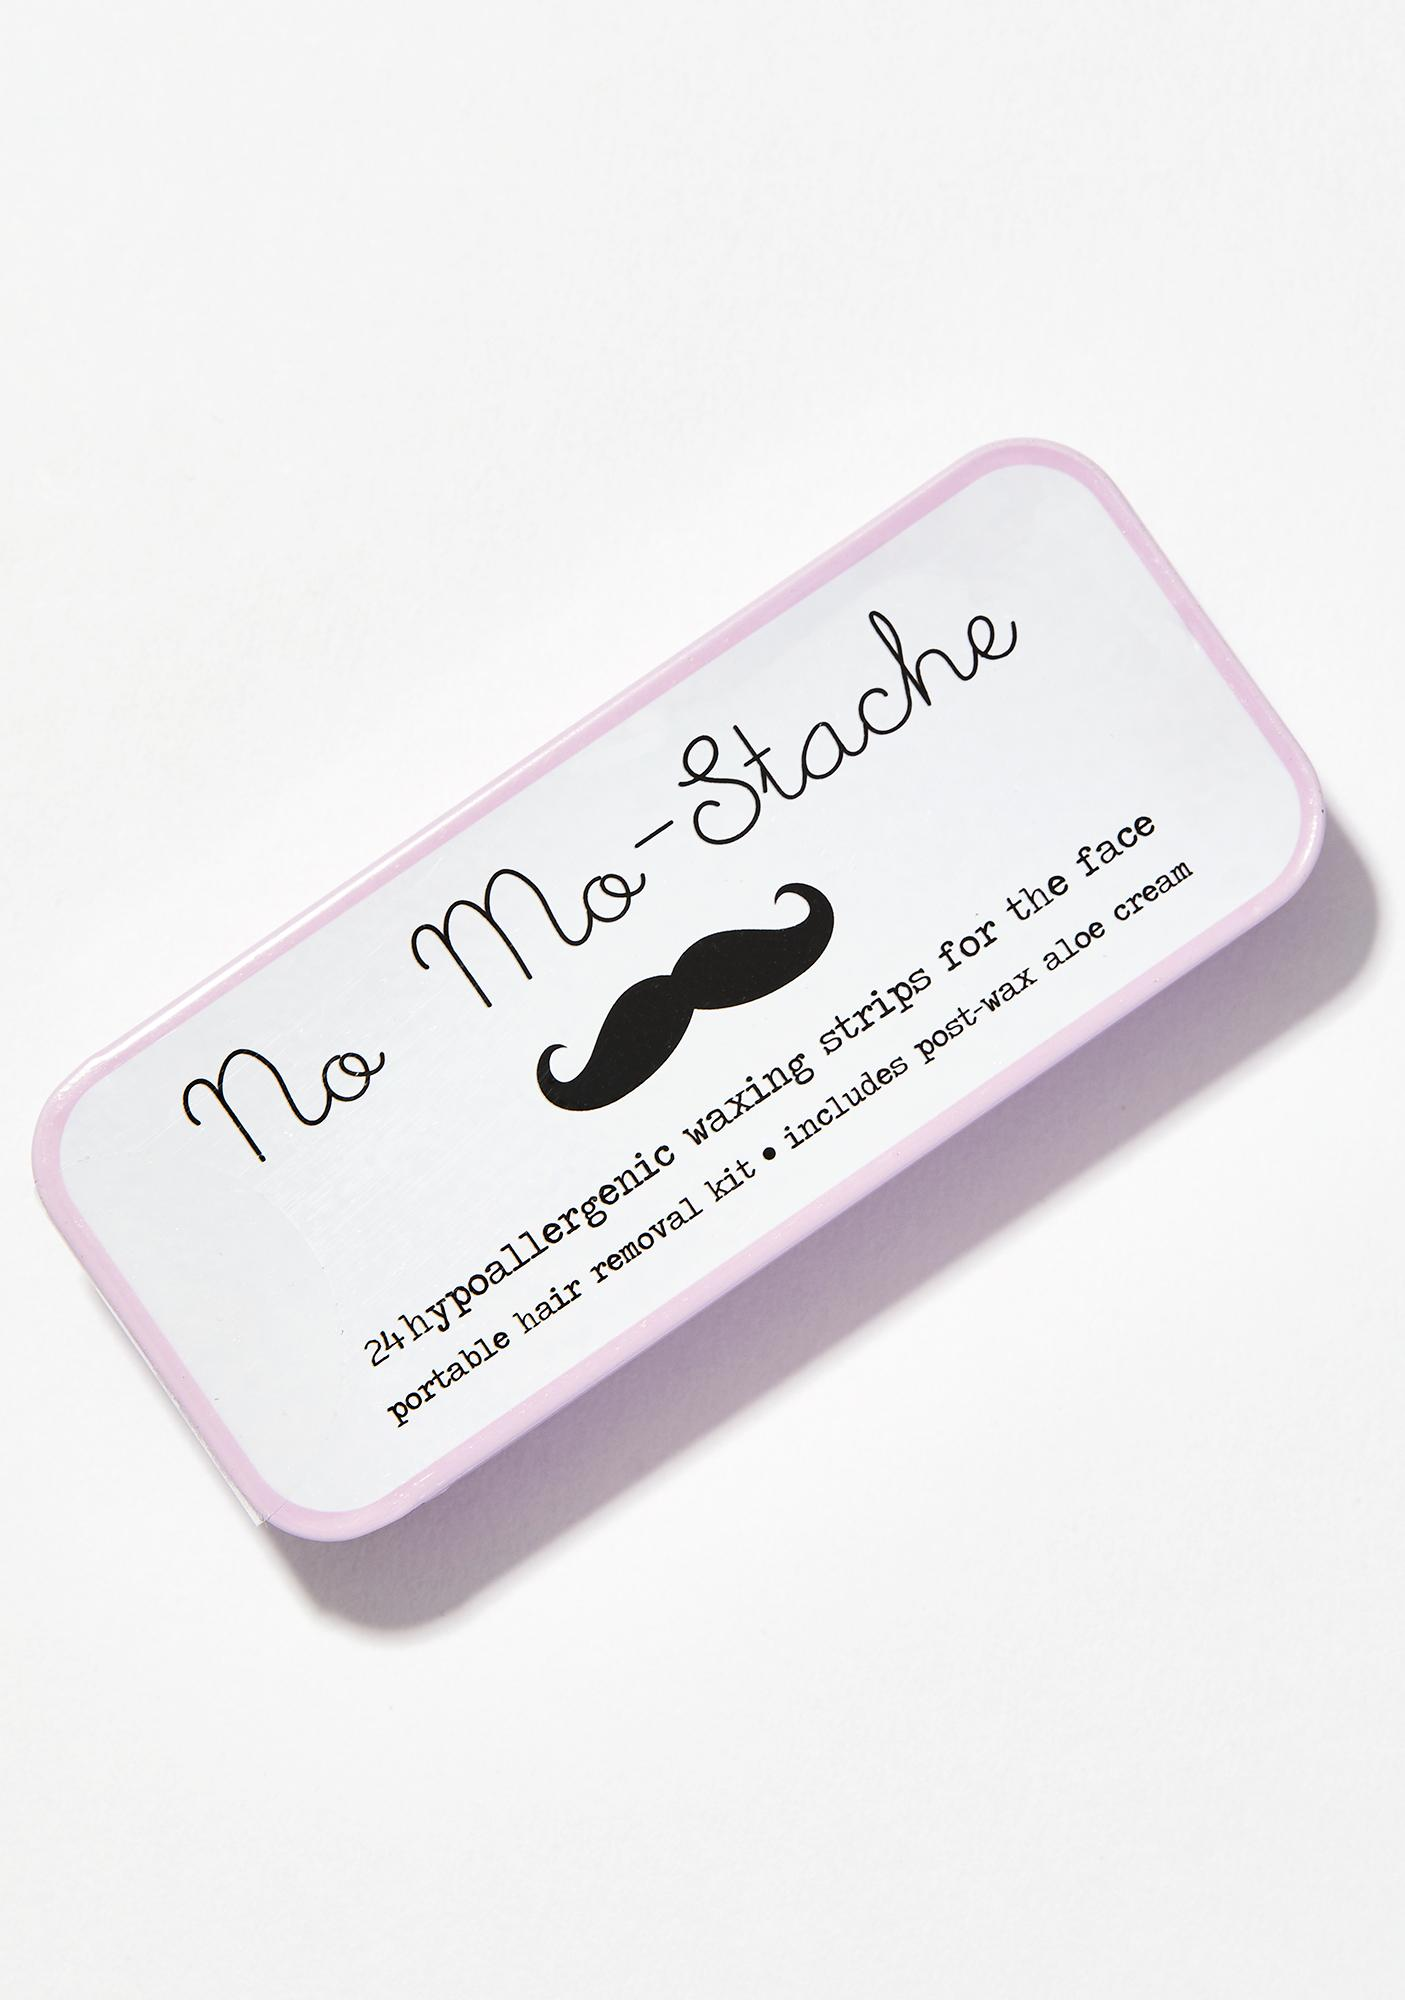 No Mo-Stache No Mo-Stache Wax Strips